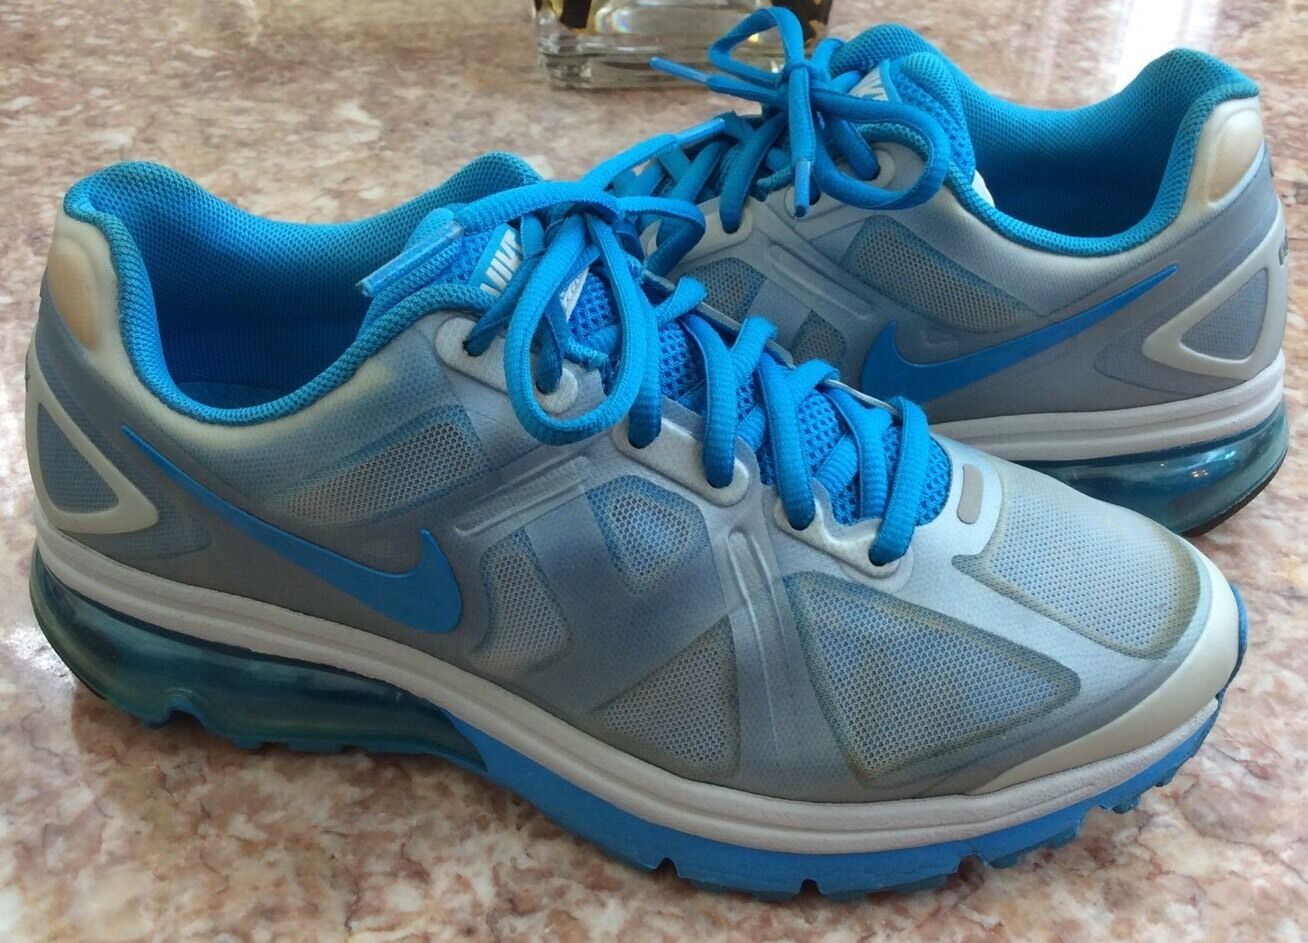 Nike Platinum Air Max Excellerate+ Women's Platinum Nike Blue Running Shoes Size 7 9355bc